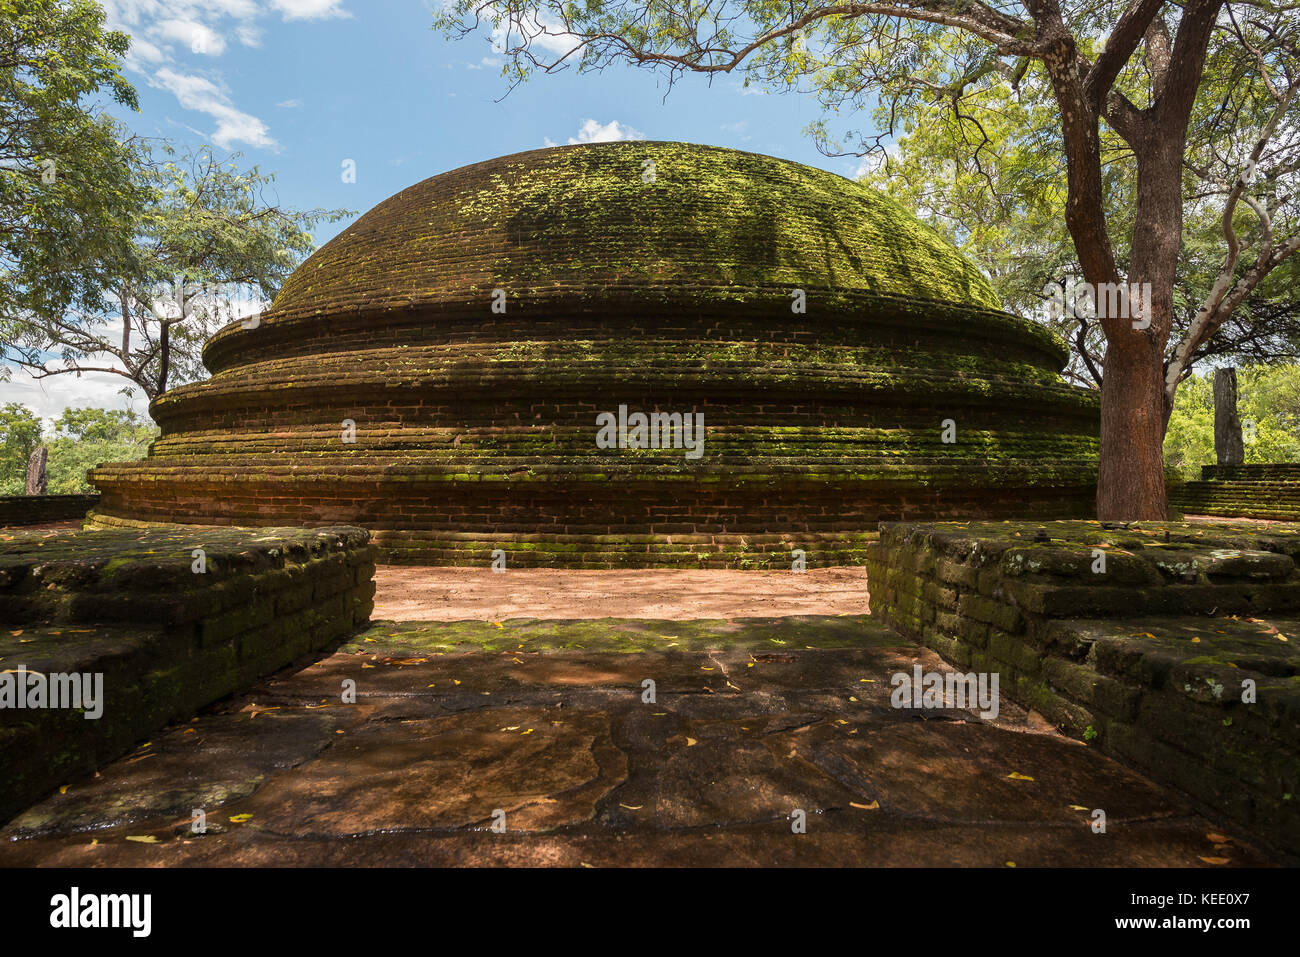 Temple in Polonnaruwa ruins, Sri Lanka - Stock Image